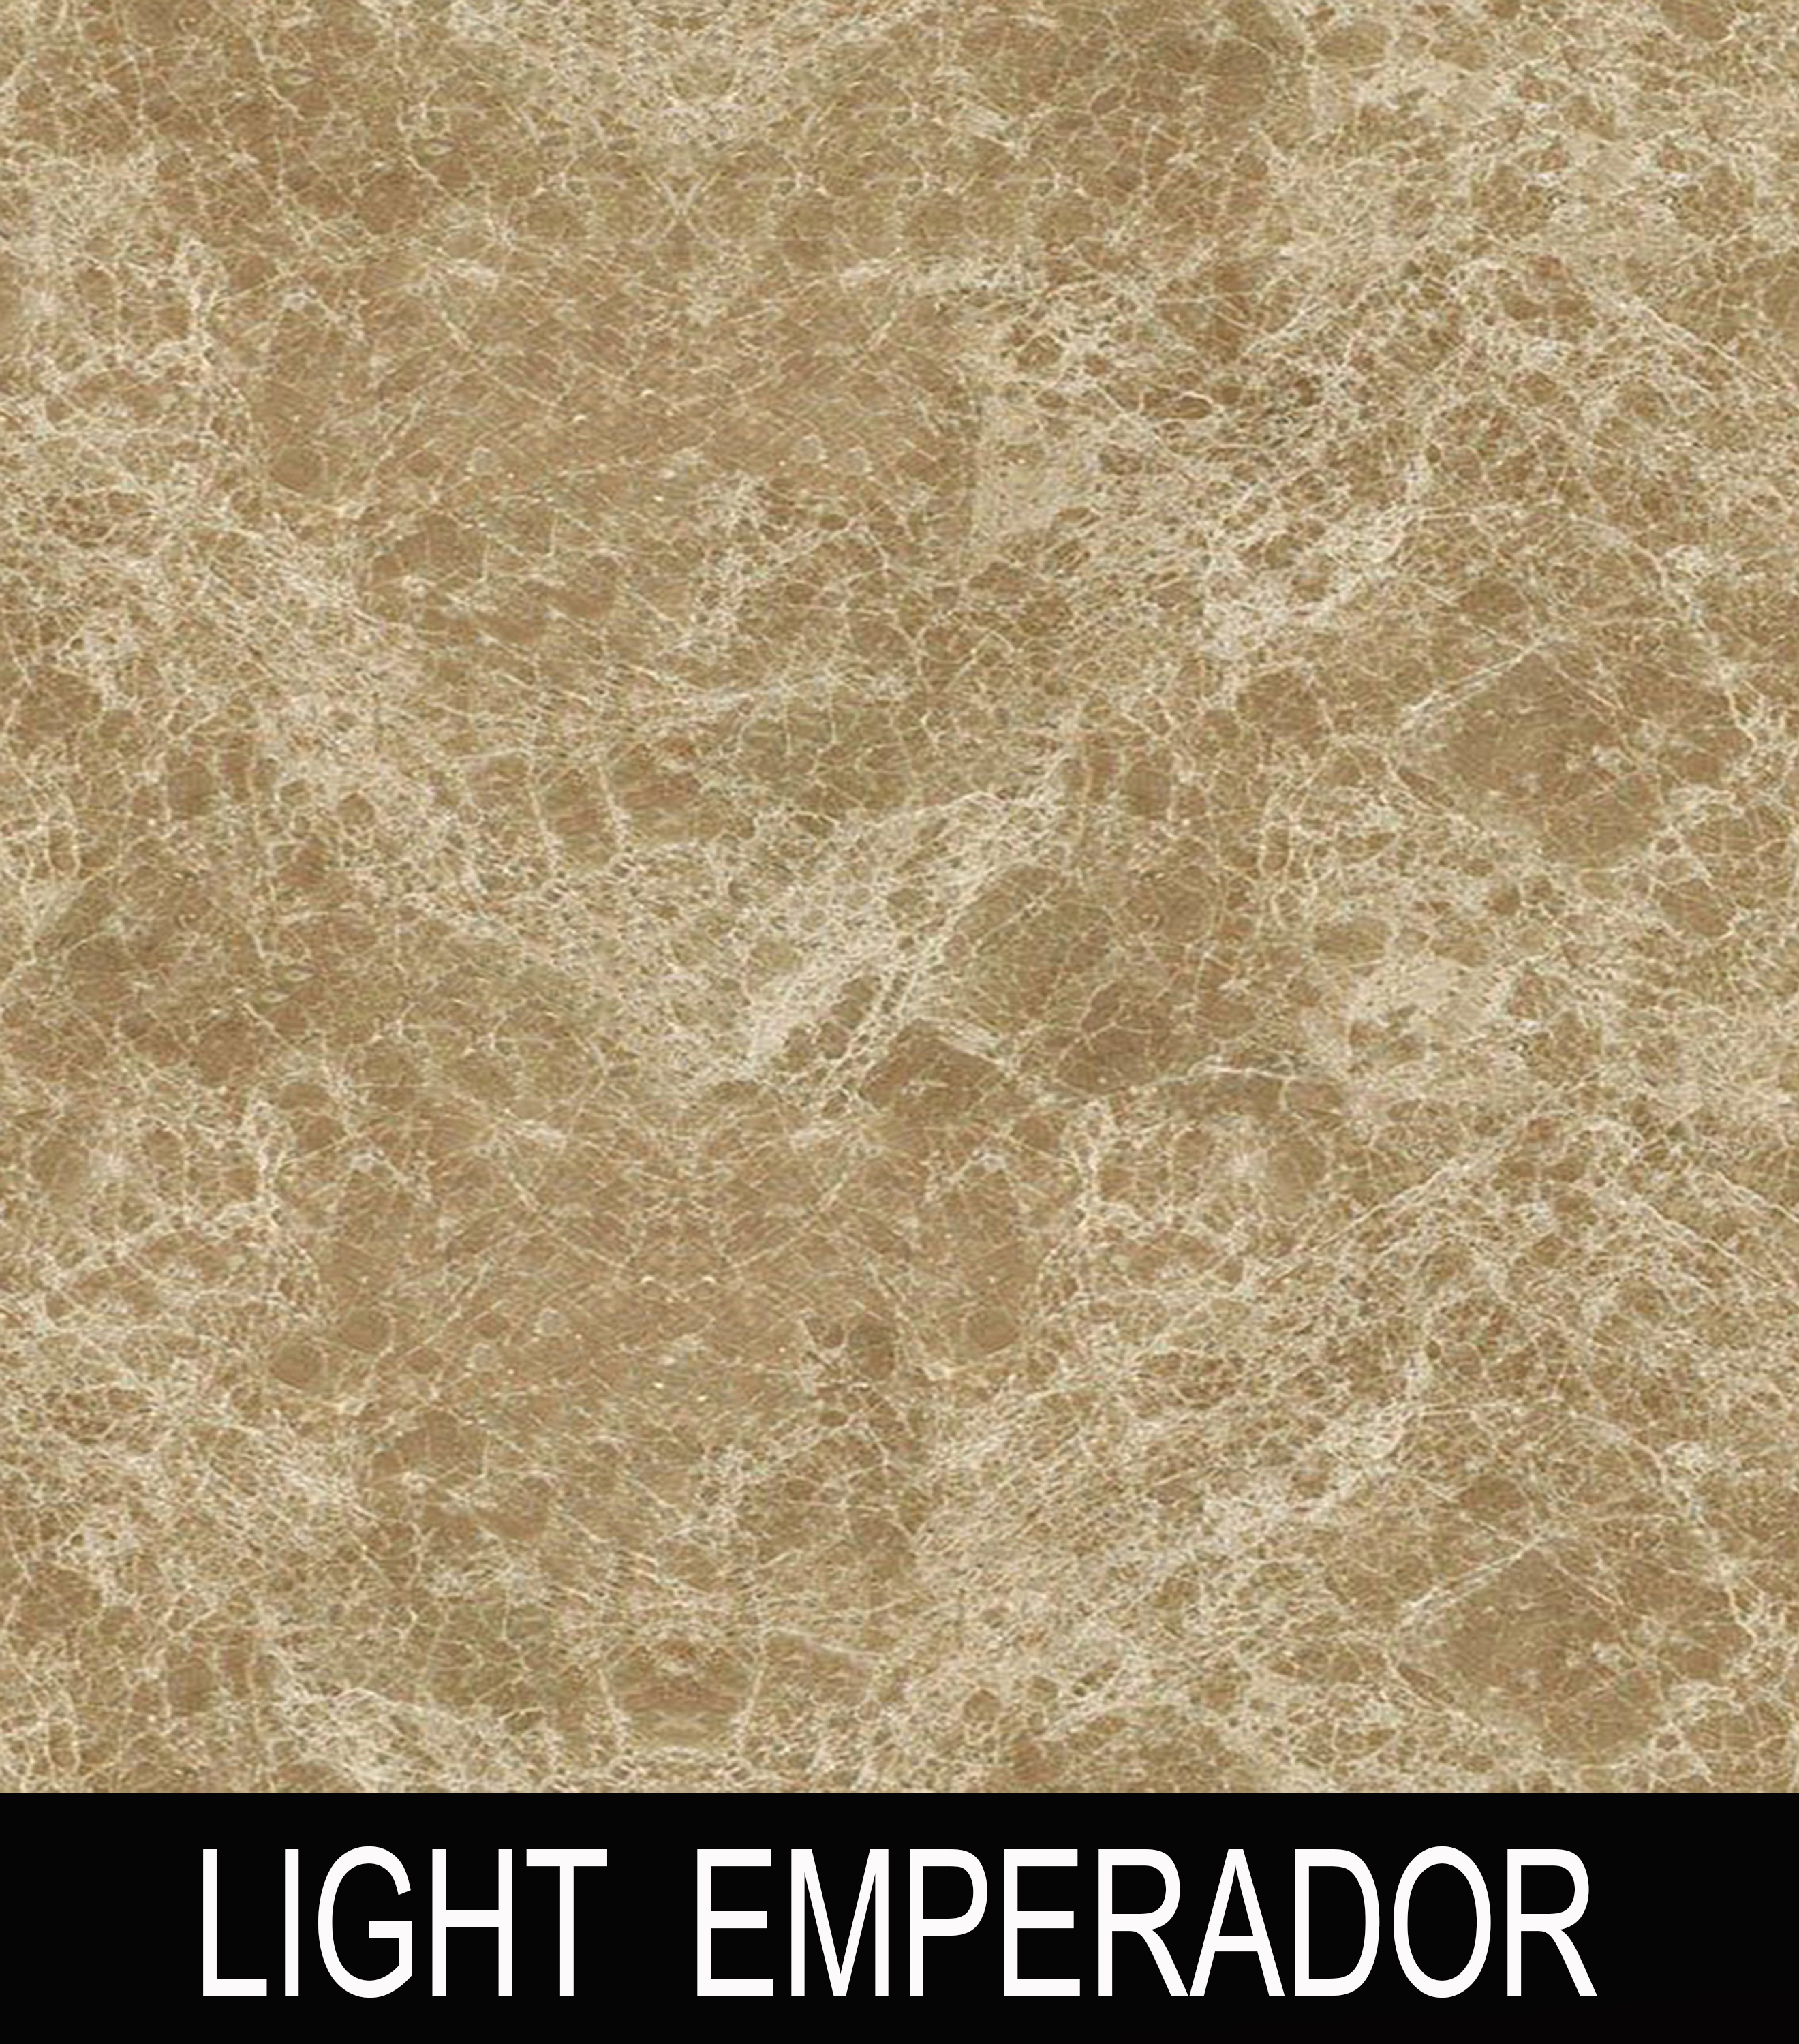 light-emperador-thumbnail.jpg